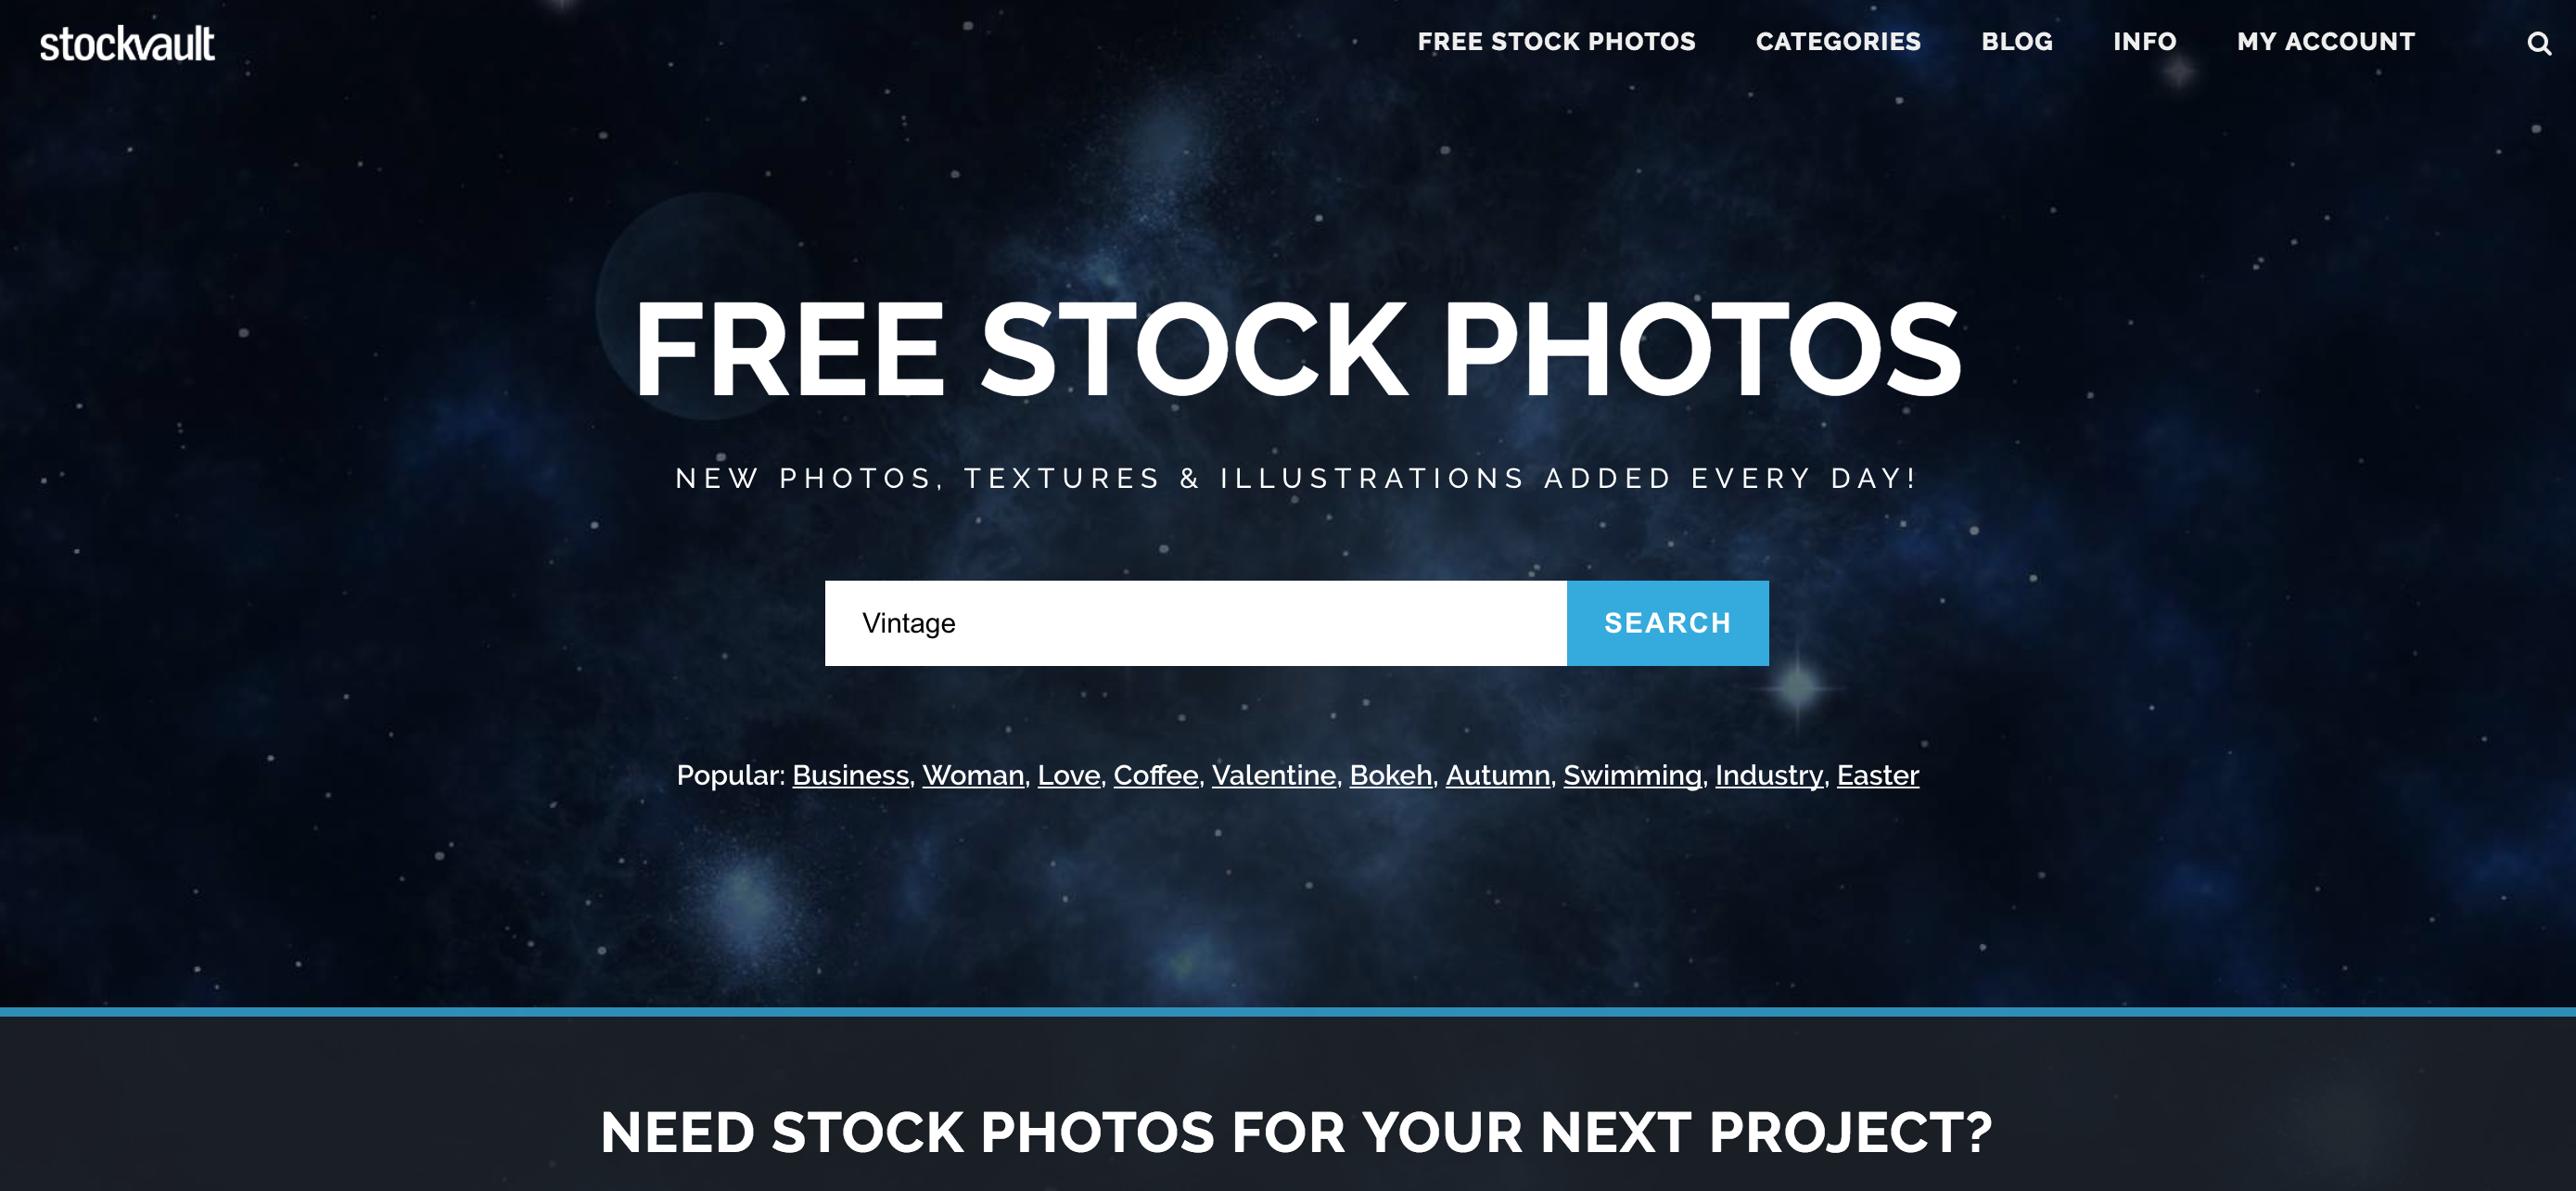 free-stock-images-for-blogs-stockvault